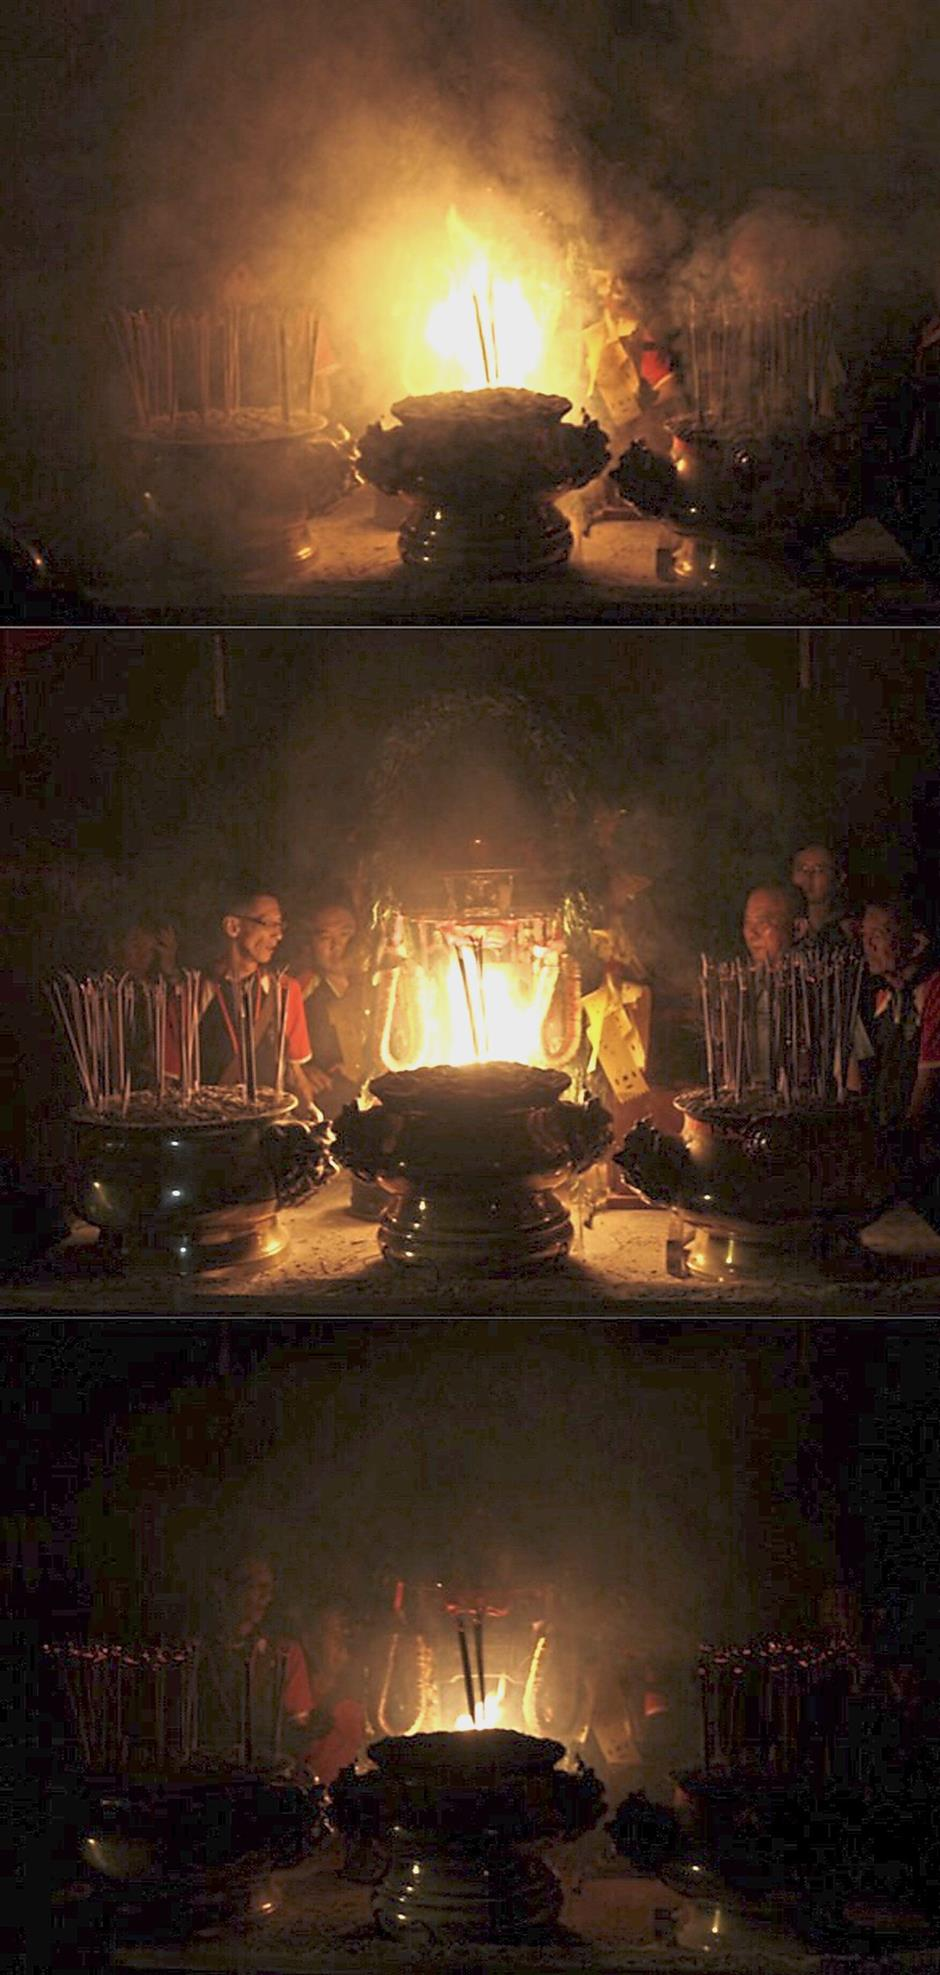 (Top to bottom) Photos showing the intensity of the flames during the ritual to predict the three cycles of the state's economy.